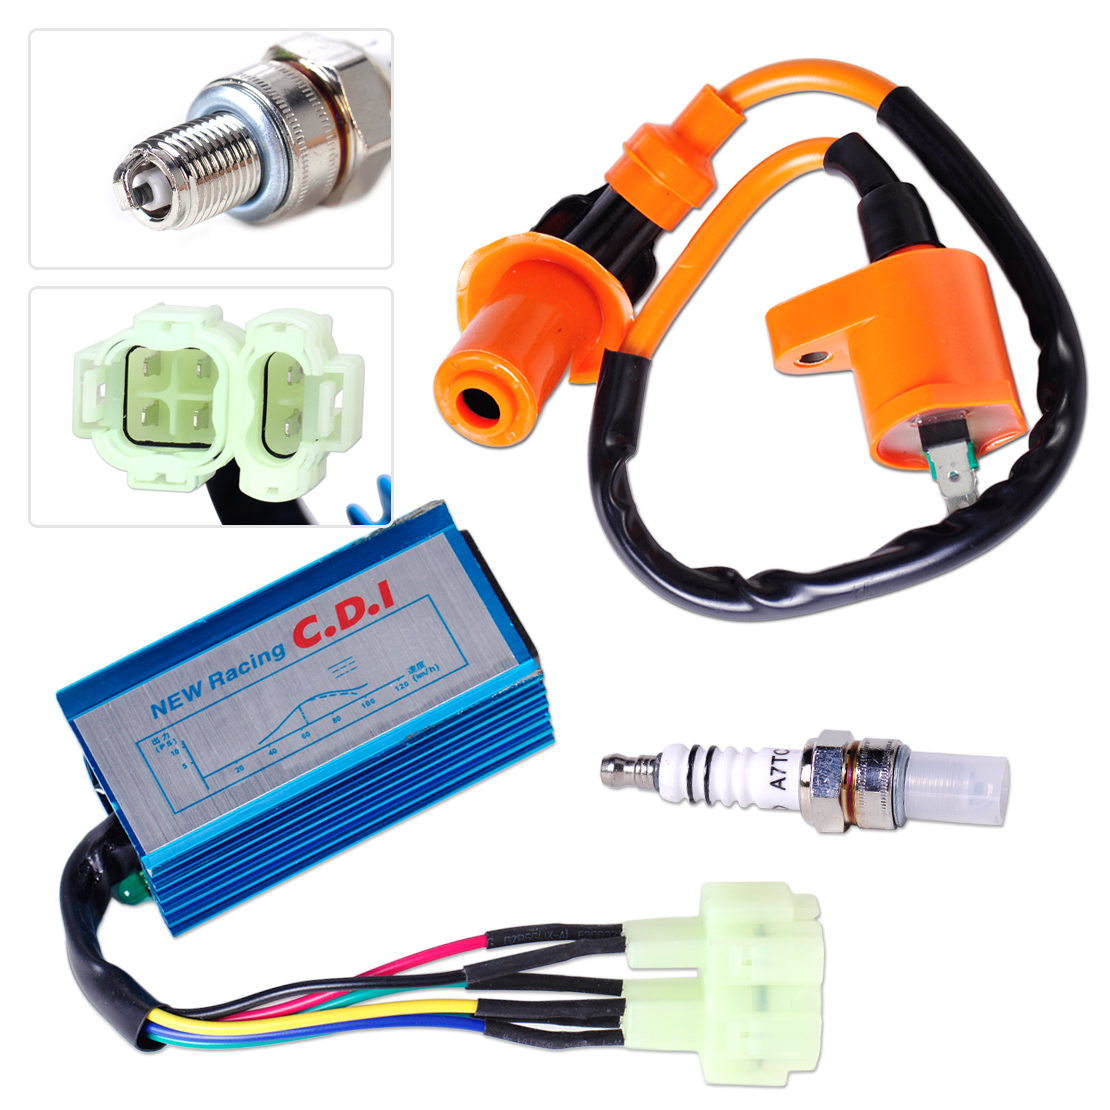 small resolution of aliexpress com buy dwcx performance ignition coil spark plug wire cdi box for gy6 50cc 90cc 125cc 150cc scooter atv go kart moped dirt bike from